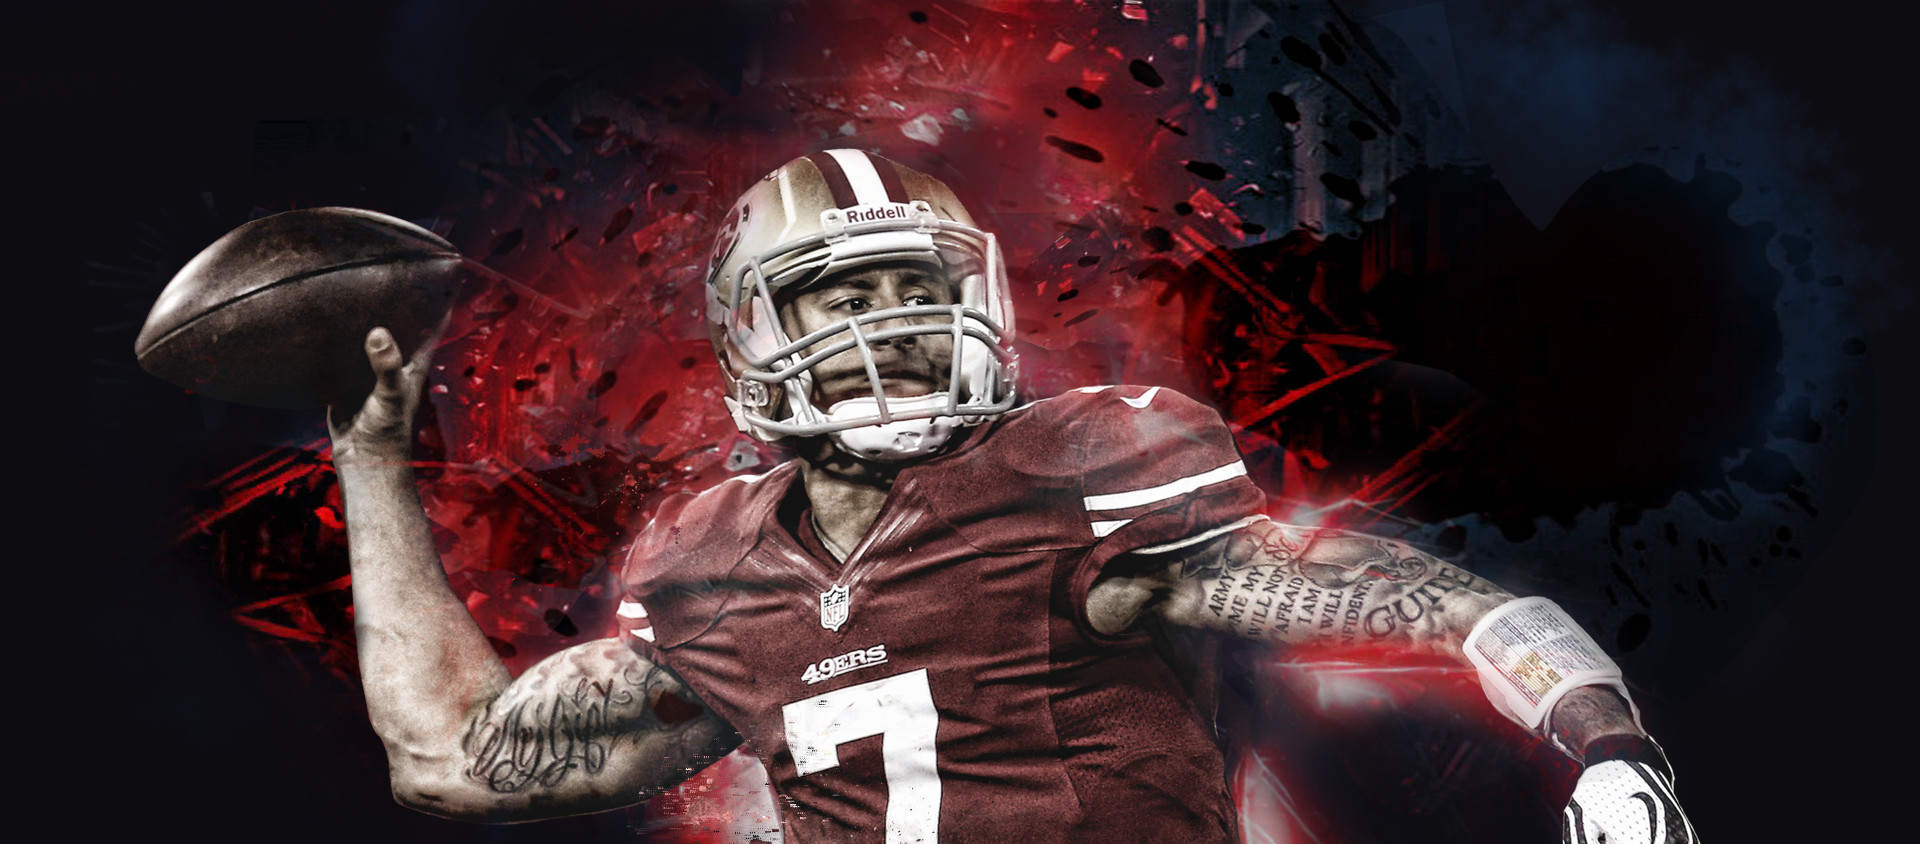 Colin Kaepernick Images Wallpaper Best Cool Wallpaper HD 1920x844